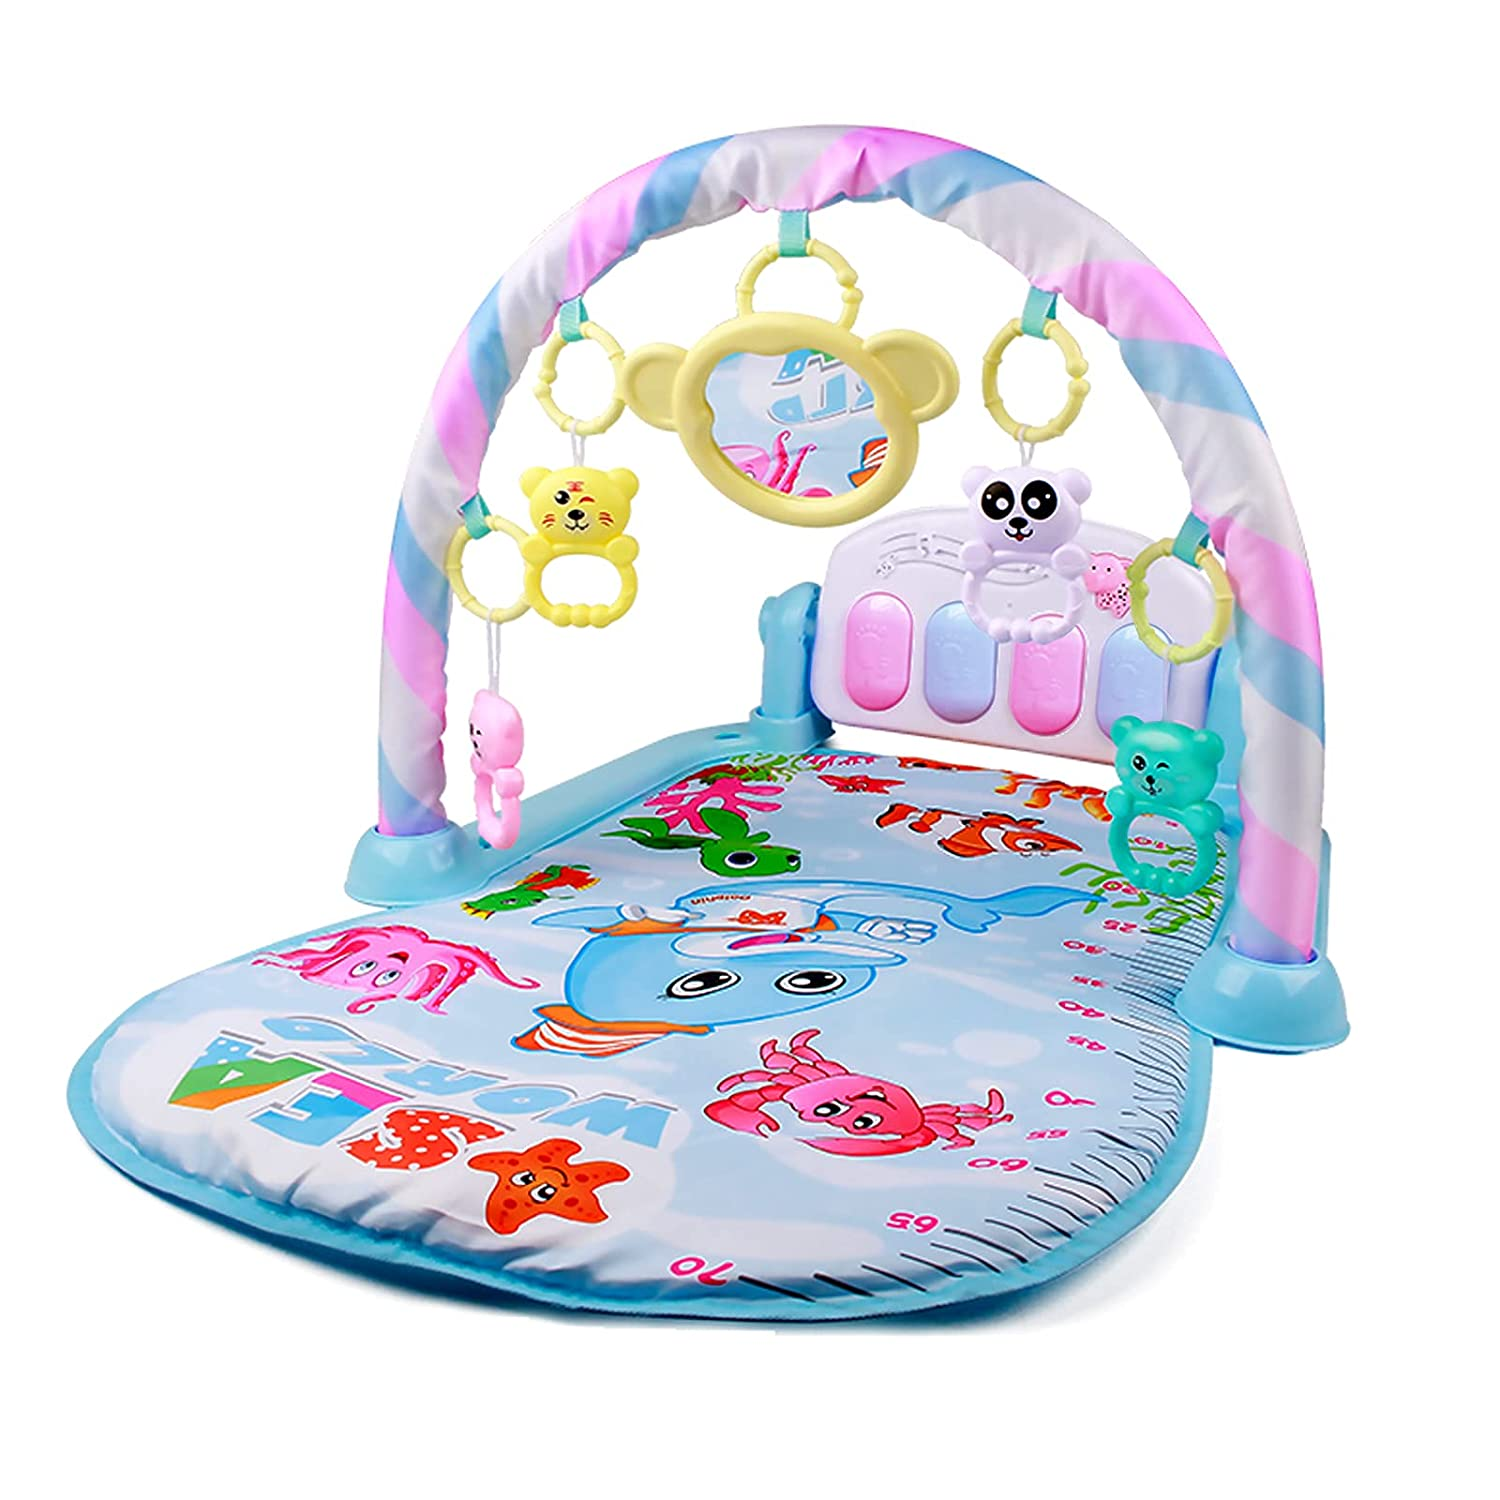 Houli latest Baby Play Max 45% OFF Gym Mat Pedal Toys Piano Sta